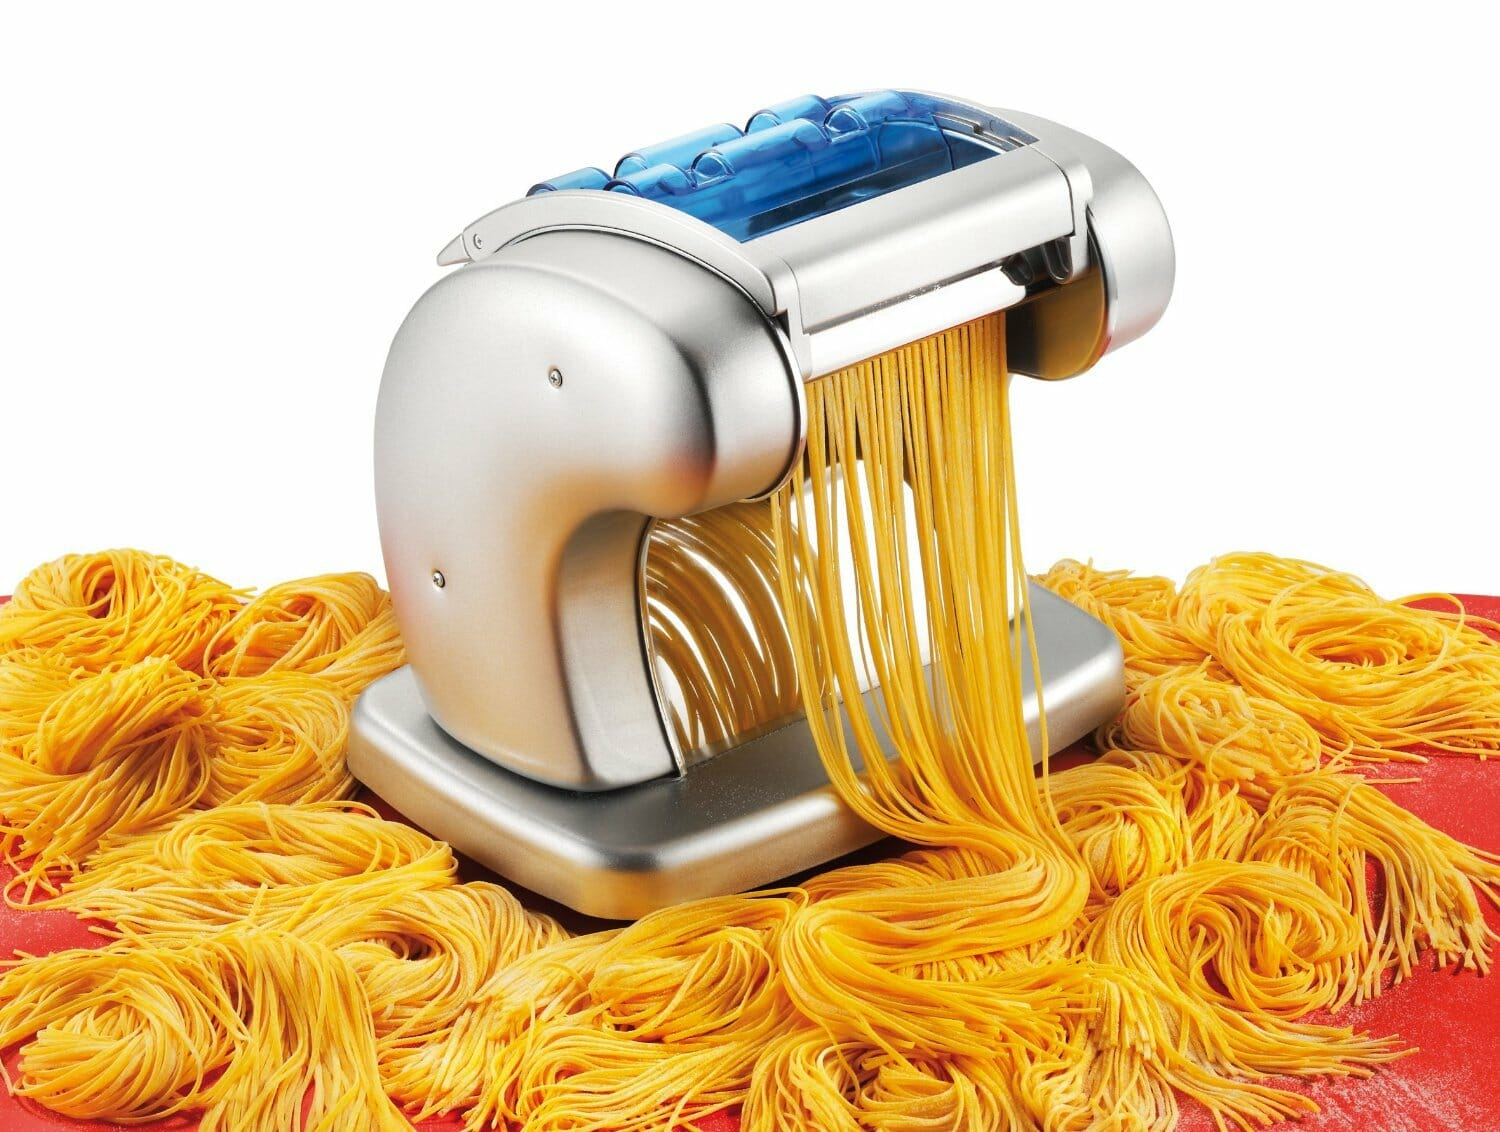 Sample of Electric pasta maker shredding noodles